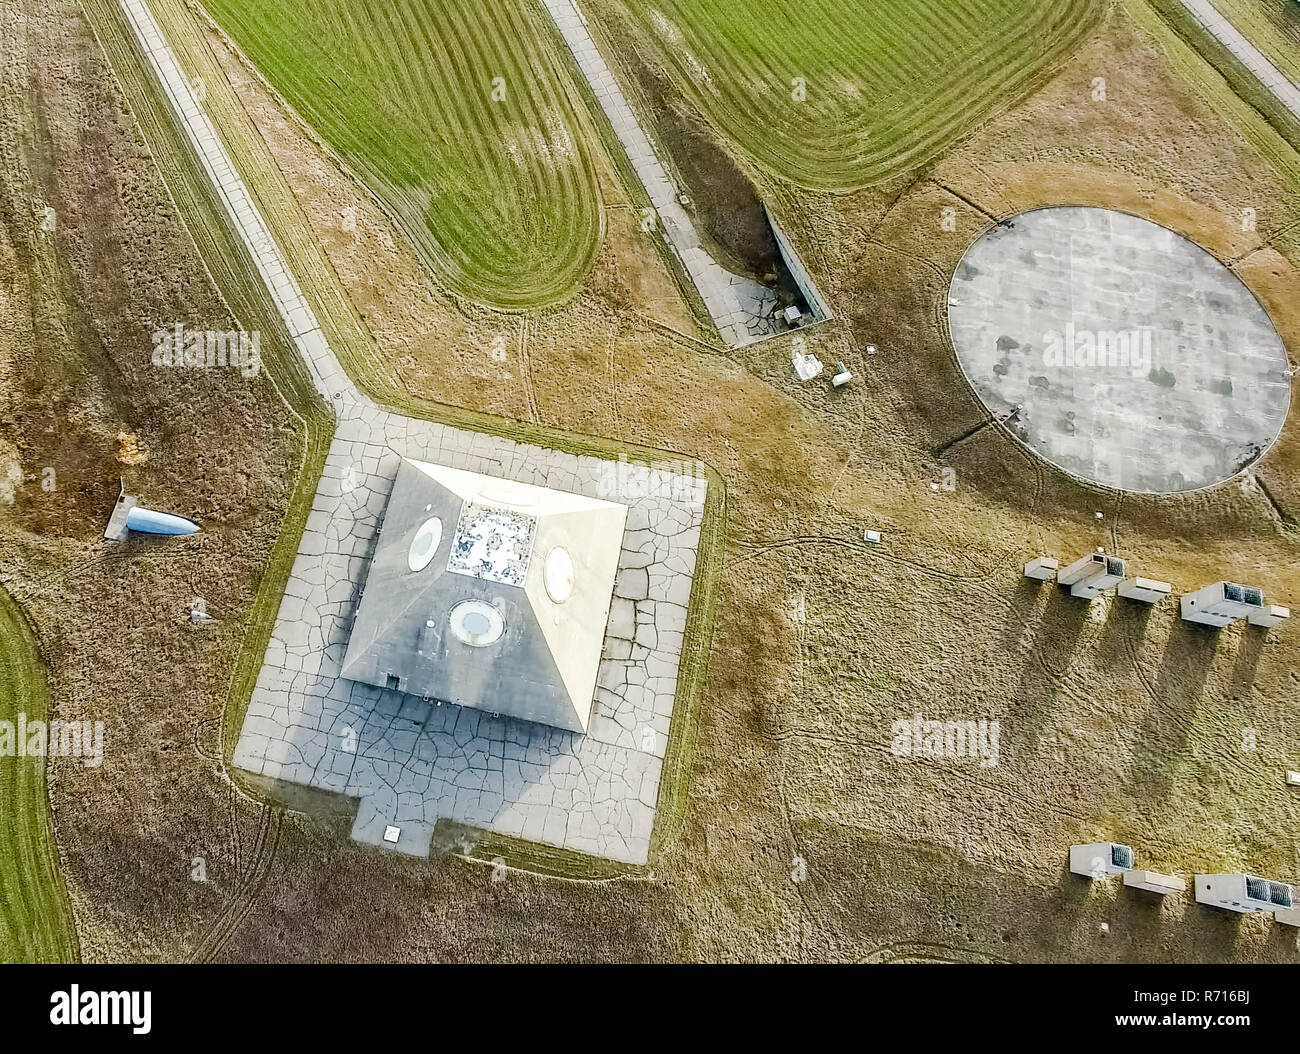 The building of the radio radar in the form of a pyramid on military base. Missile Site Radar Pyramid in Nekoma North Dakota. - Stock Image